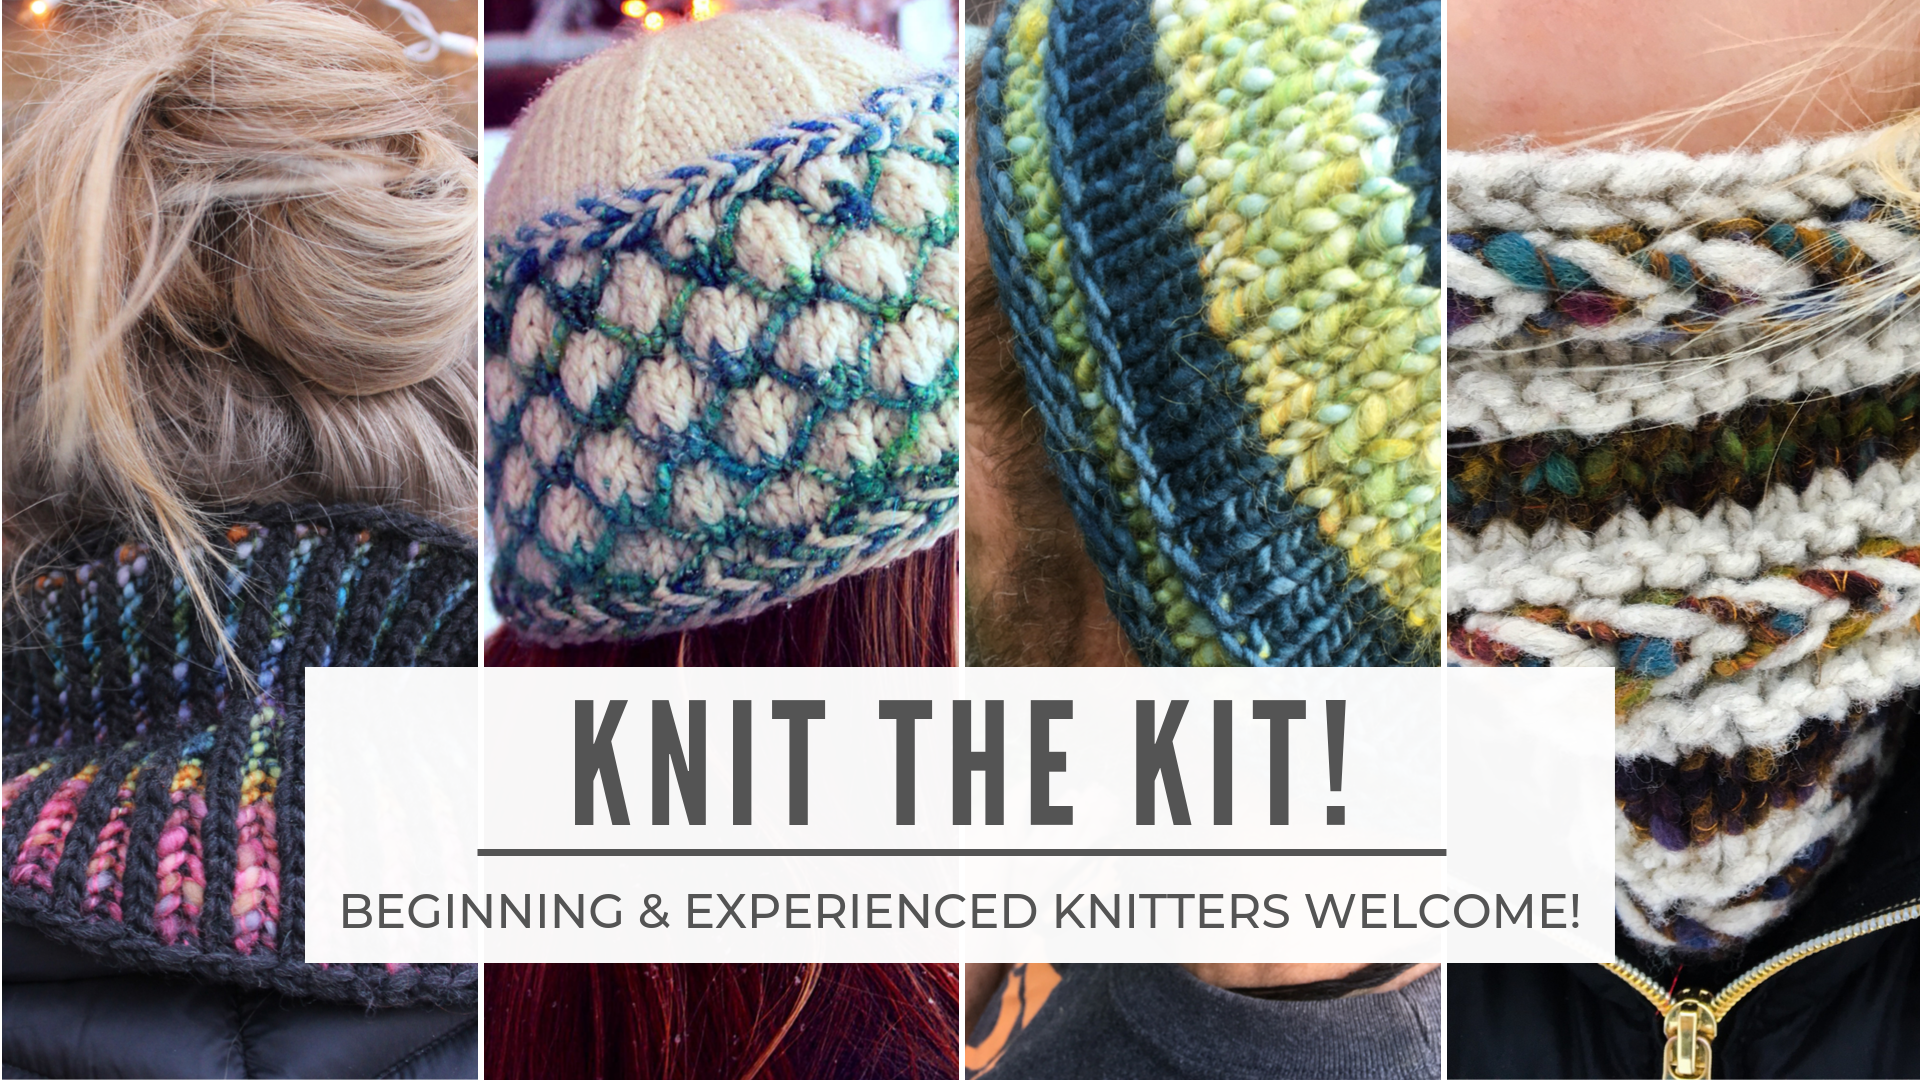 Knit the Kit